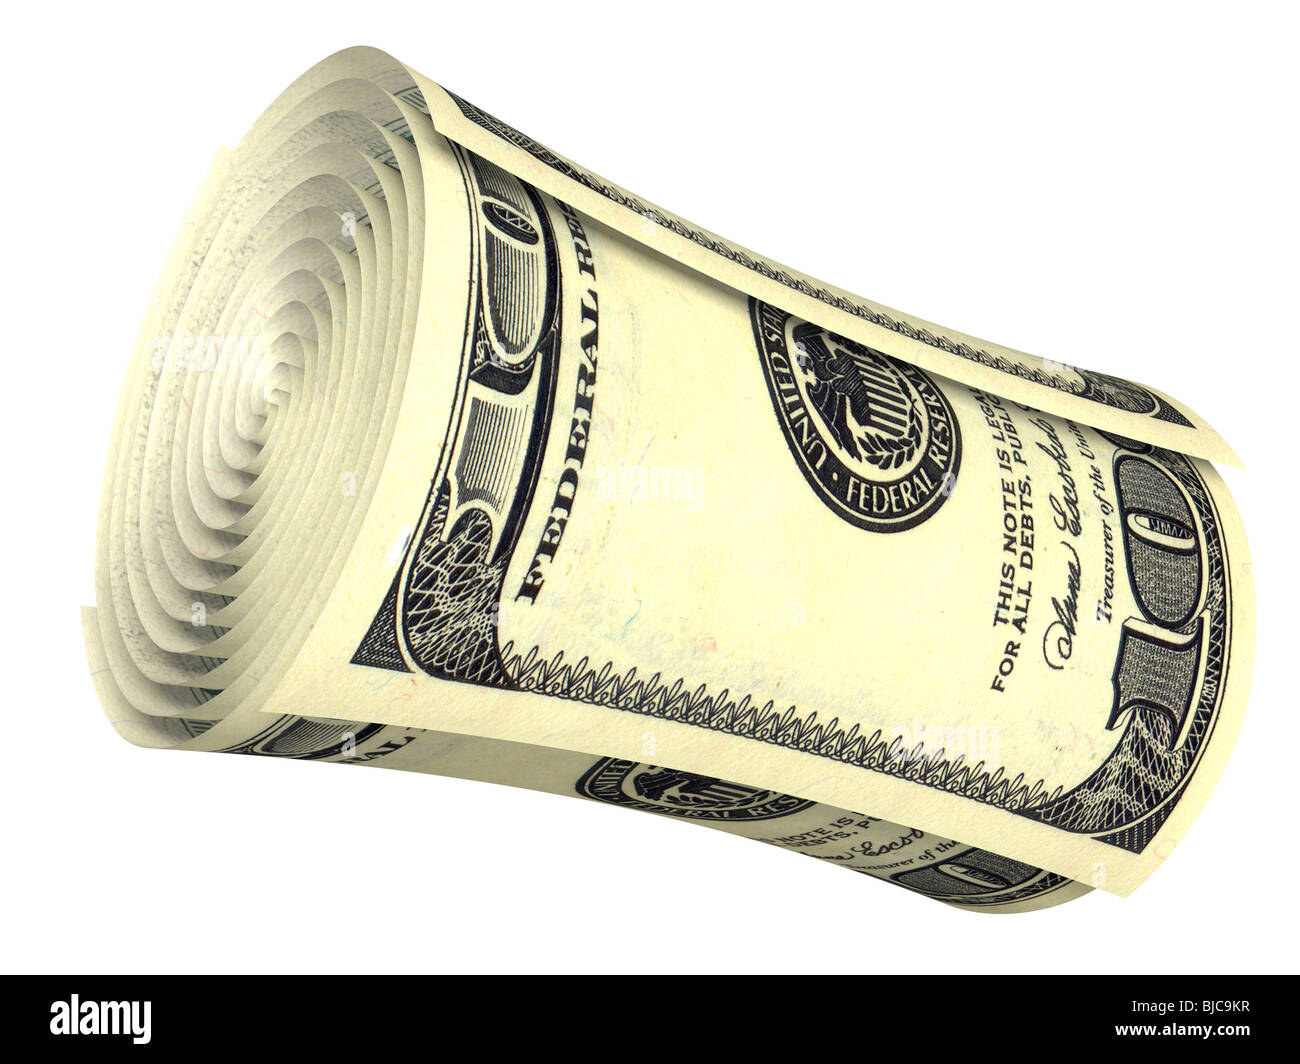 Rolled dollar banknote isolated on white - Stock Image